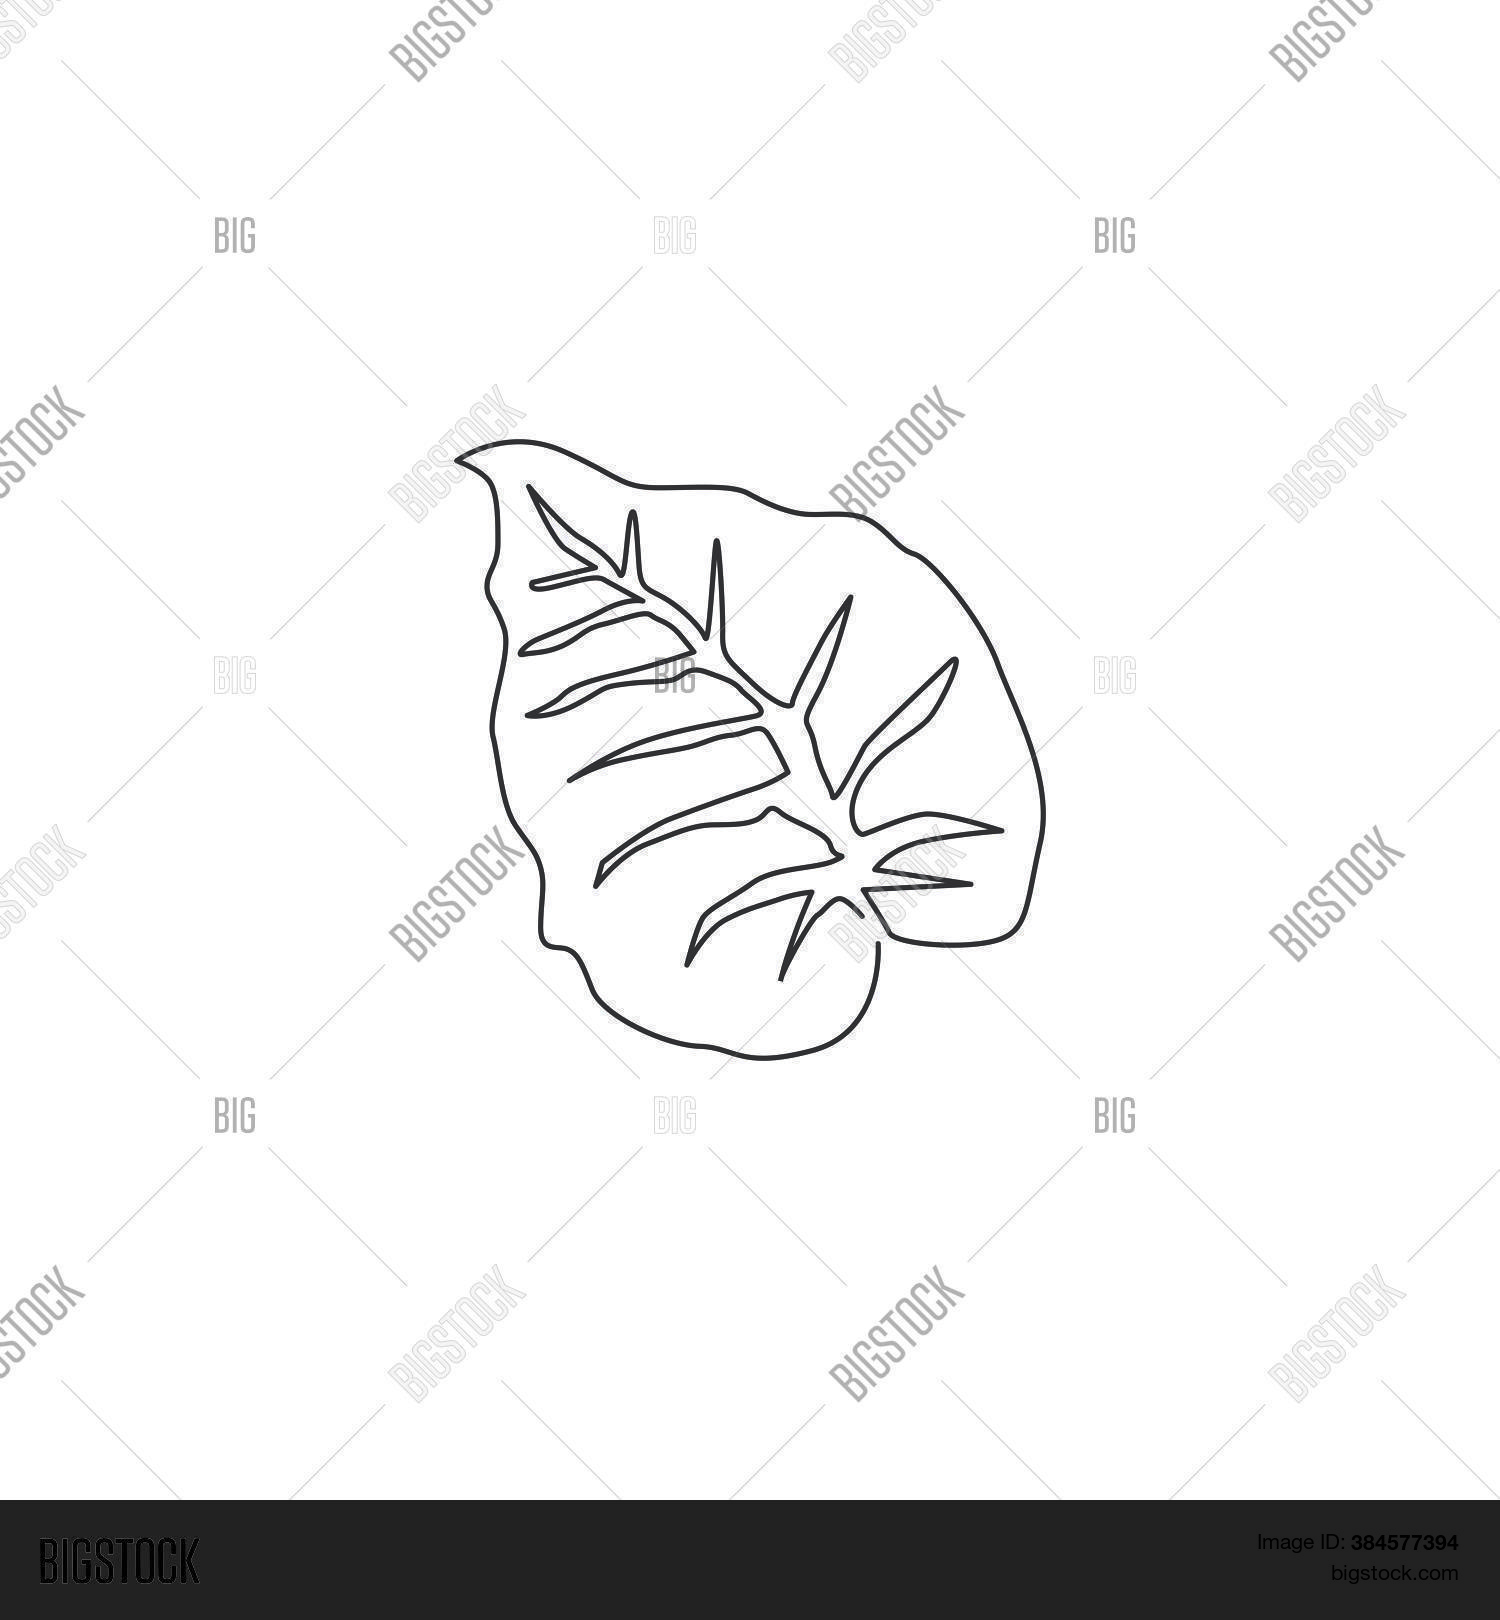 One Continuous Line Vector Photo Free Trial Bigstock Find over 100+ of the best free tropical leaves images. one continuous line vector photo